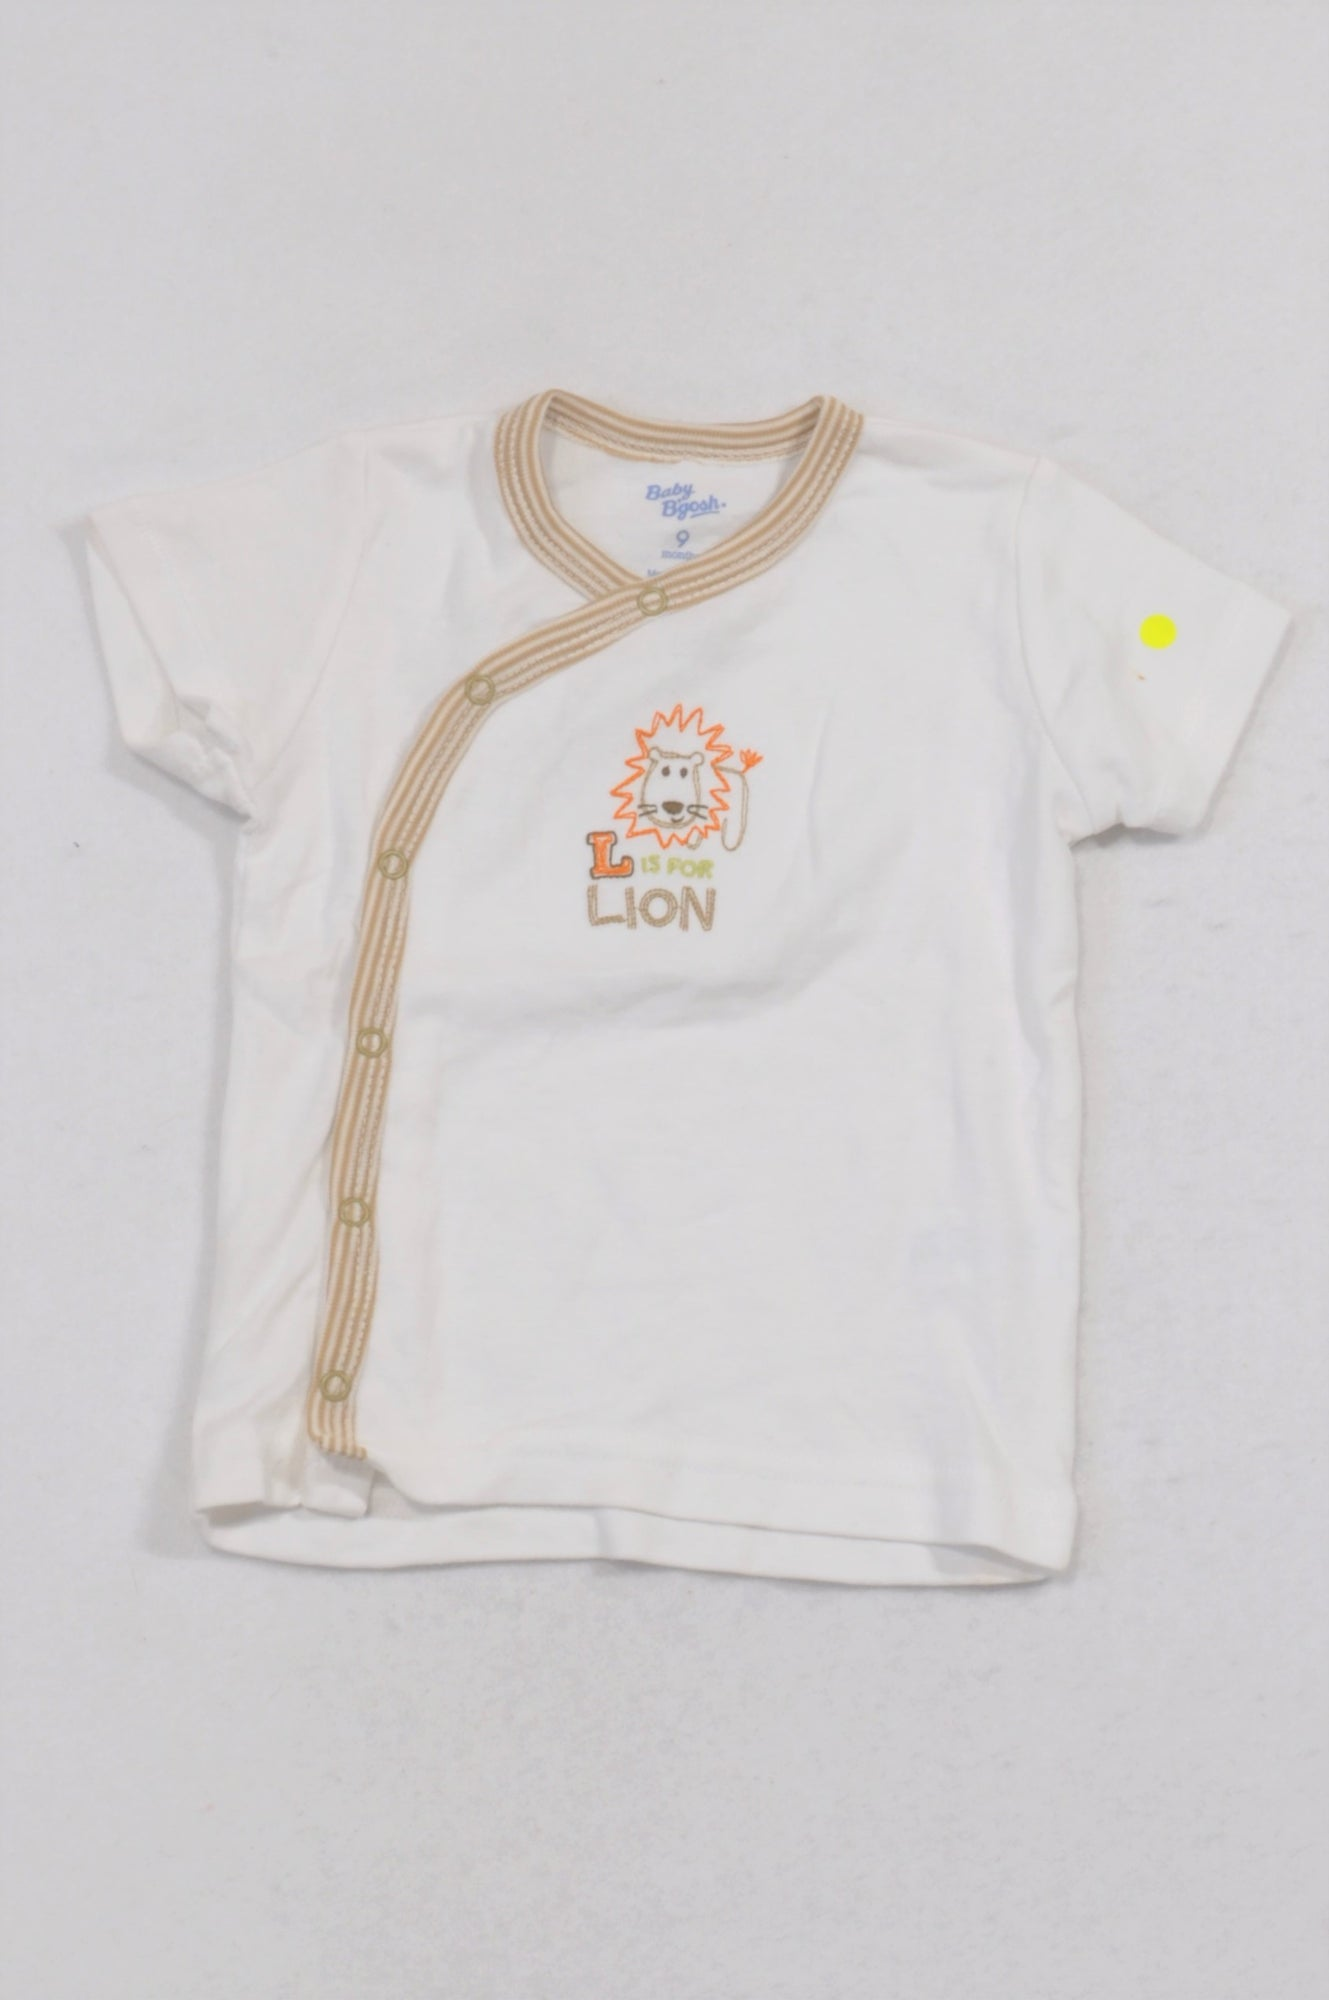 Baby B'gosh L Is For Lion Kimono Snap T-shirt Boys 6-9 months